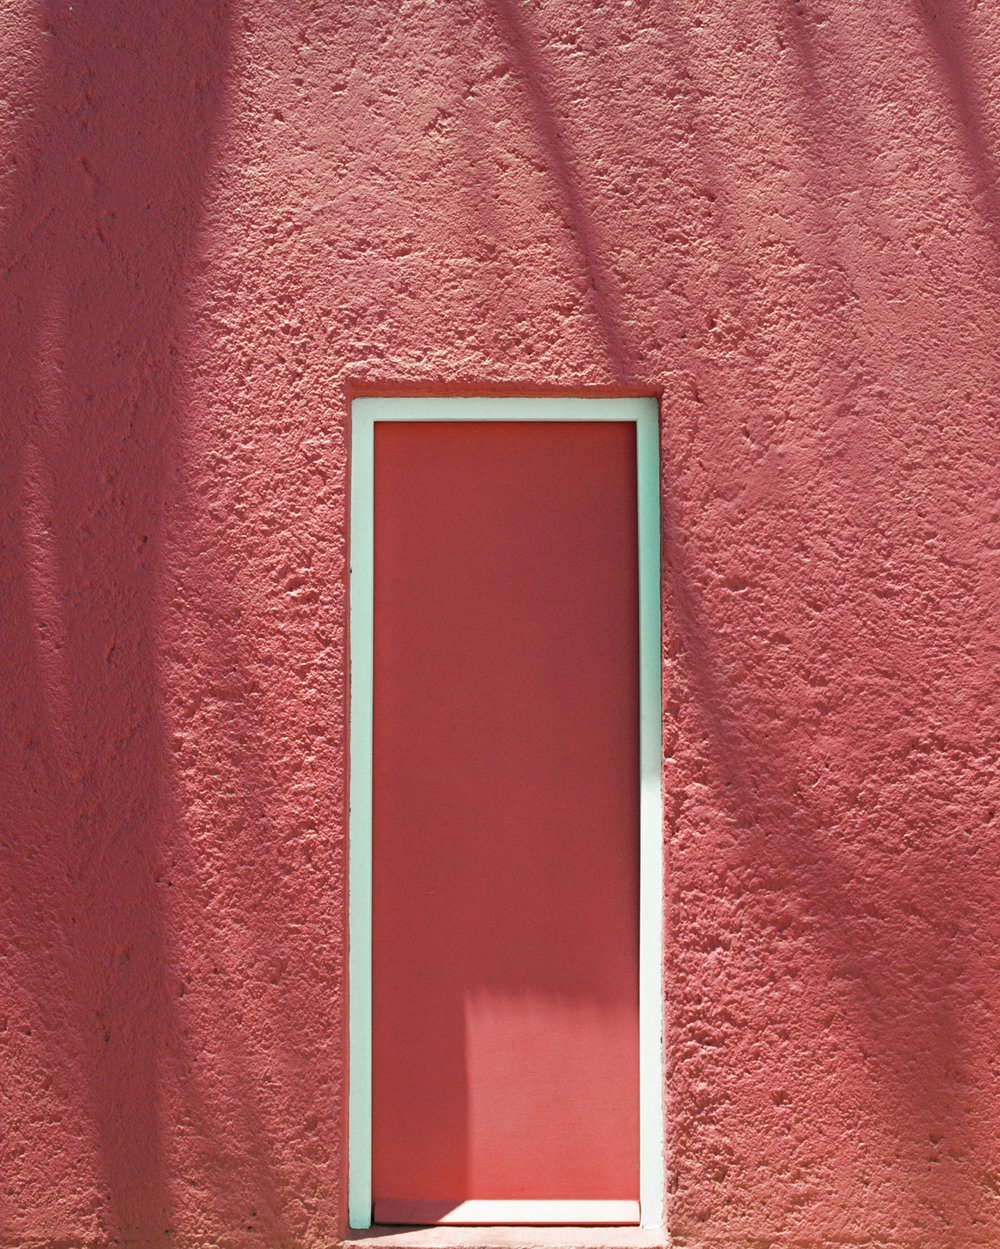 Barragan Casa Gilardi Pink wall and door